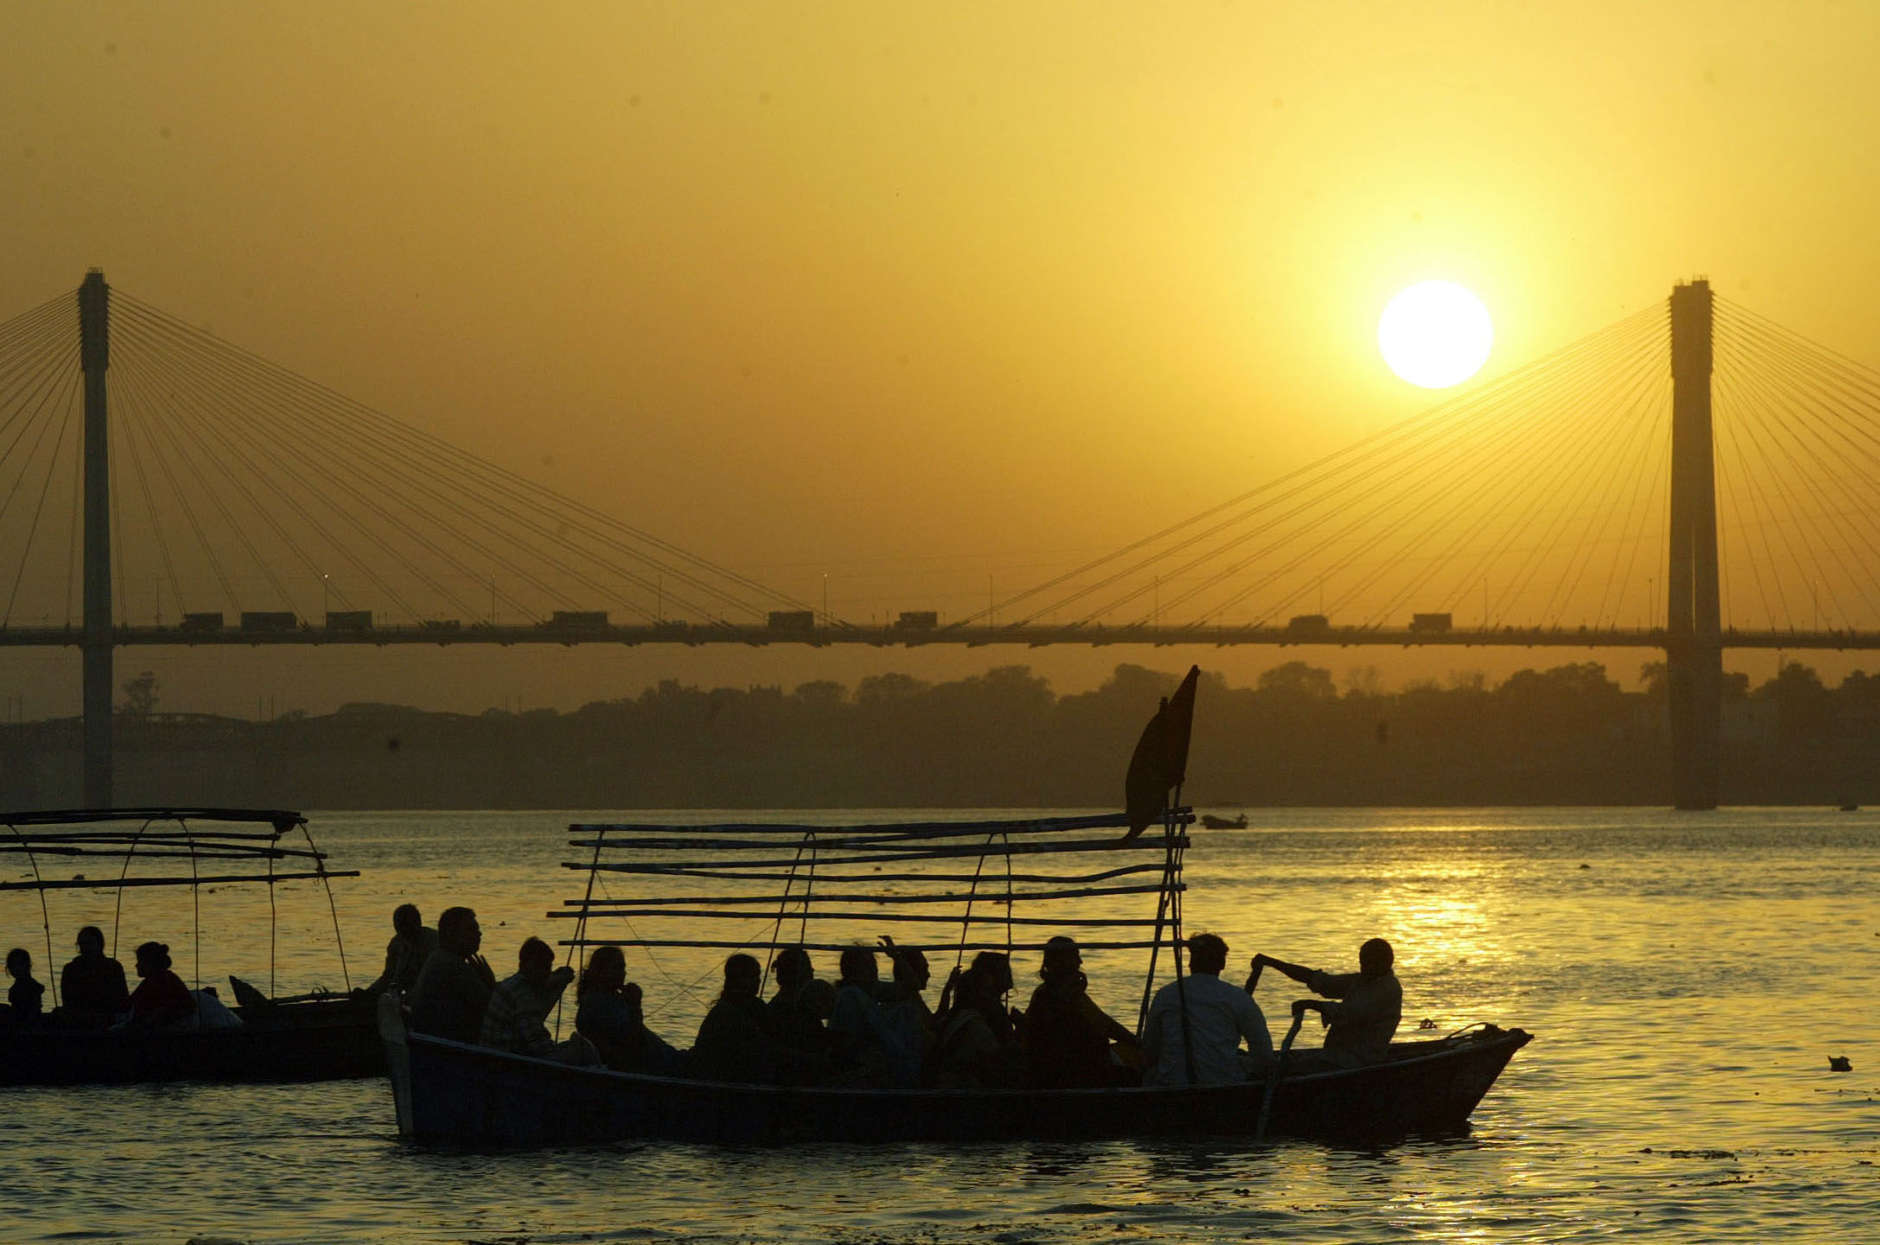 Hindu devotees row back to the shore after taking a bath in the River Ganges during the solar eclipse, in Allahabad, India, Wednesday, March 29, 2006. Hindus pray during the solar eclipse to ward off evil. (AP Photo/Rajesh Kumar Singh)